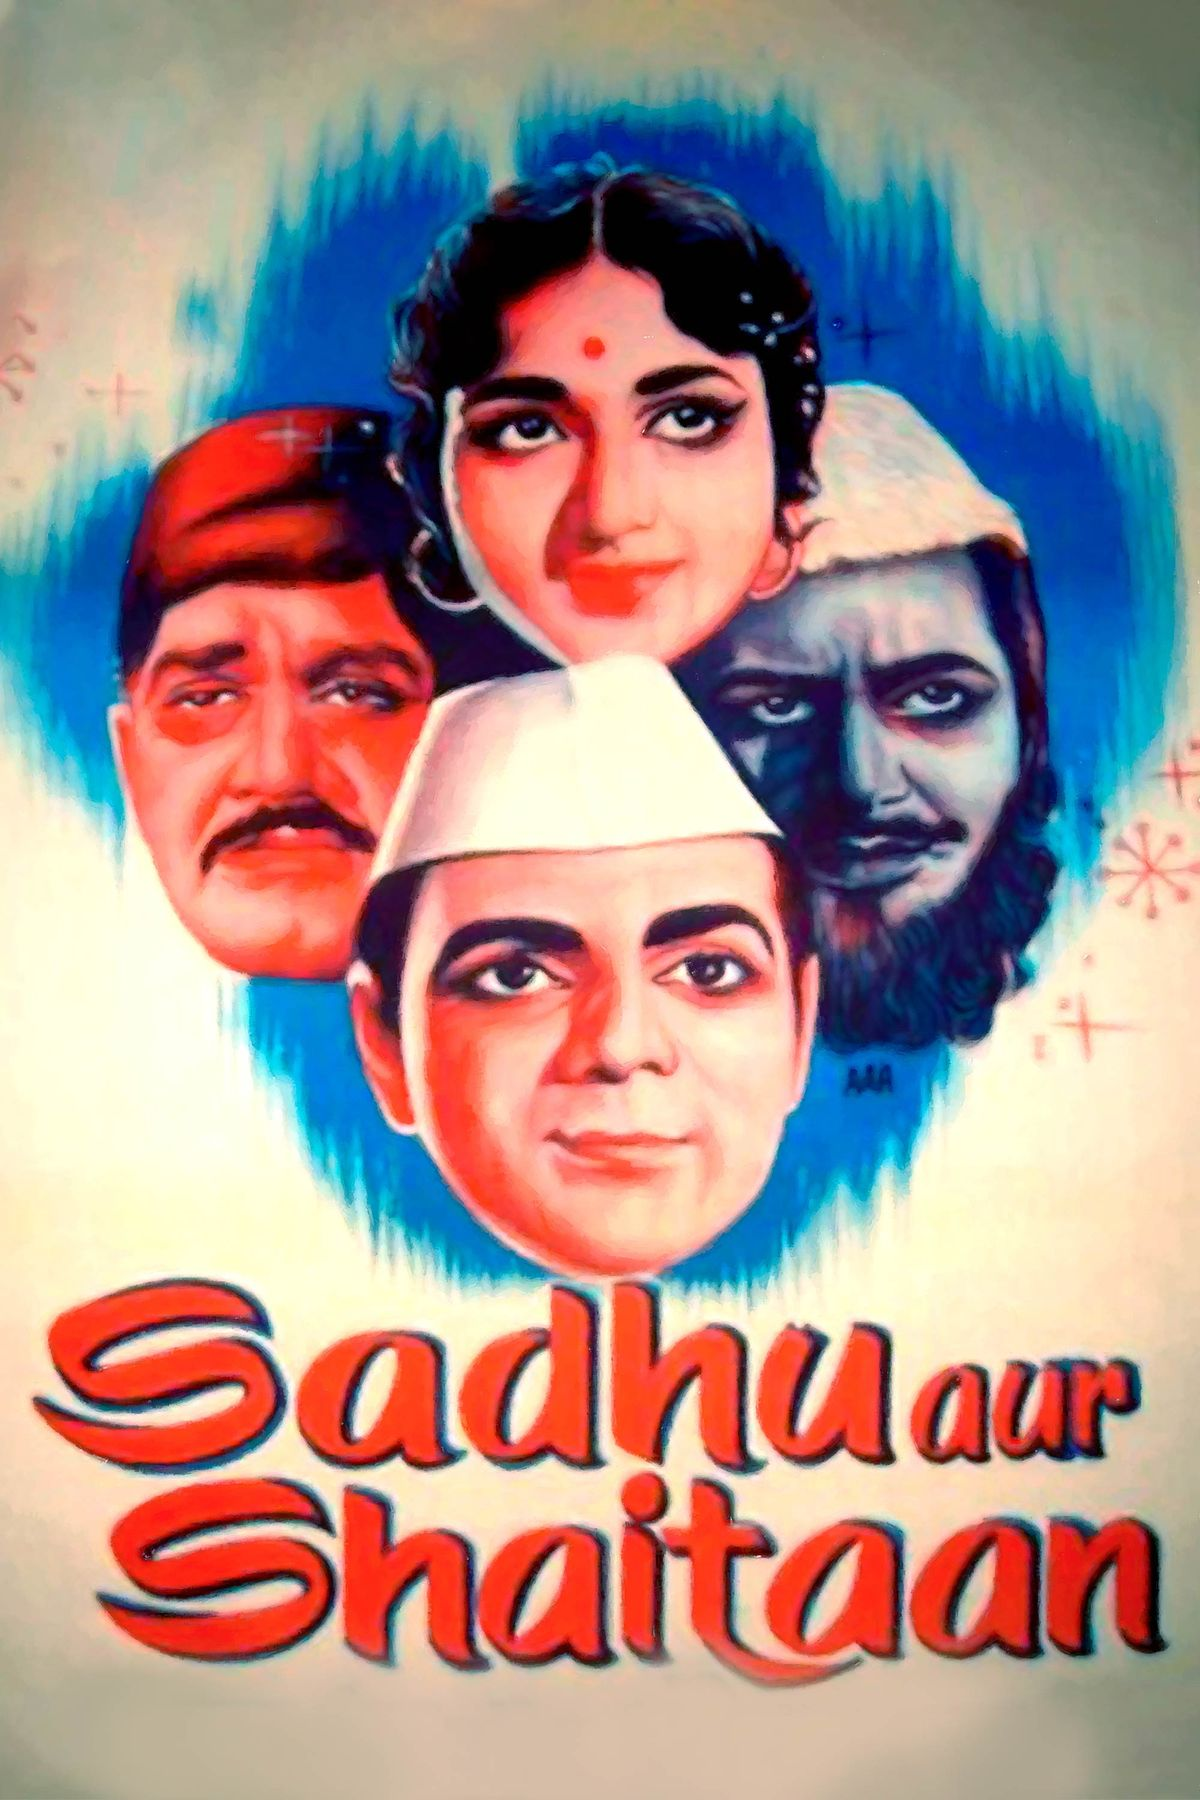 Mehmood Best Movies, TV Shows and Web Series List